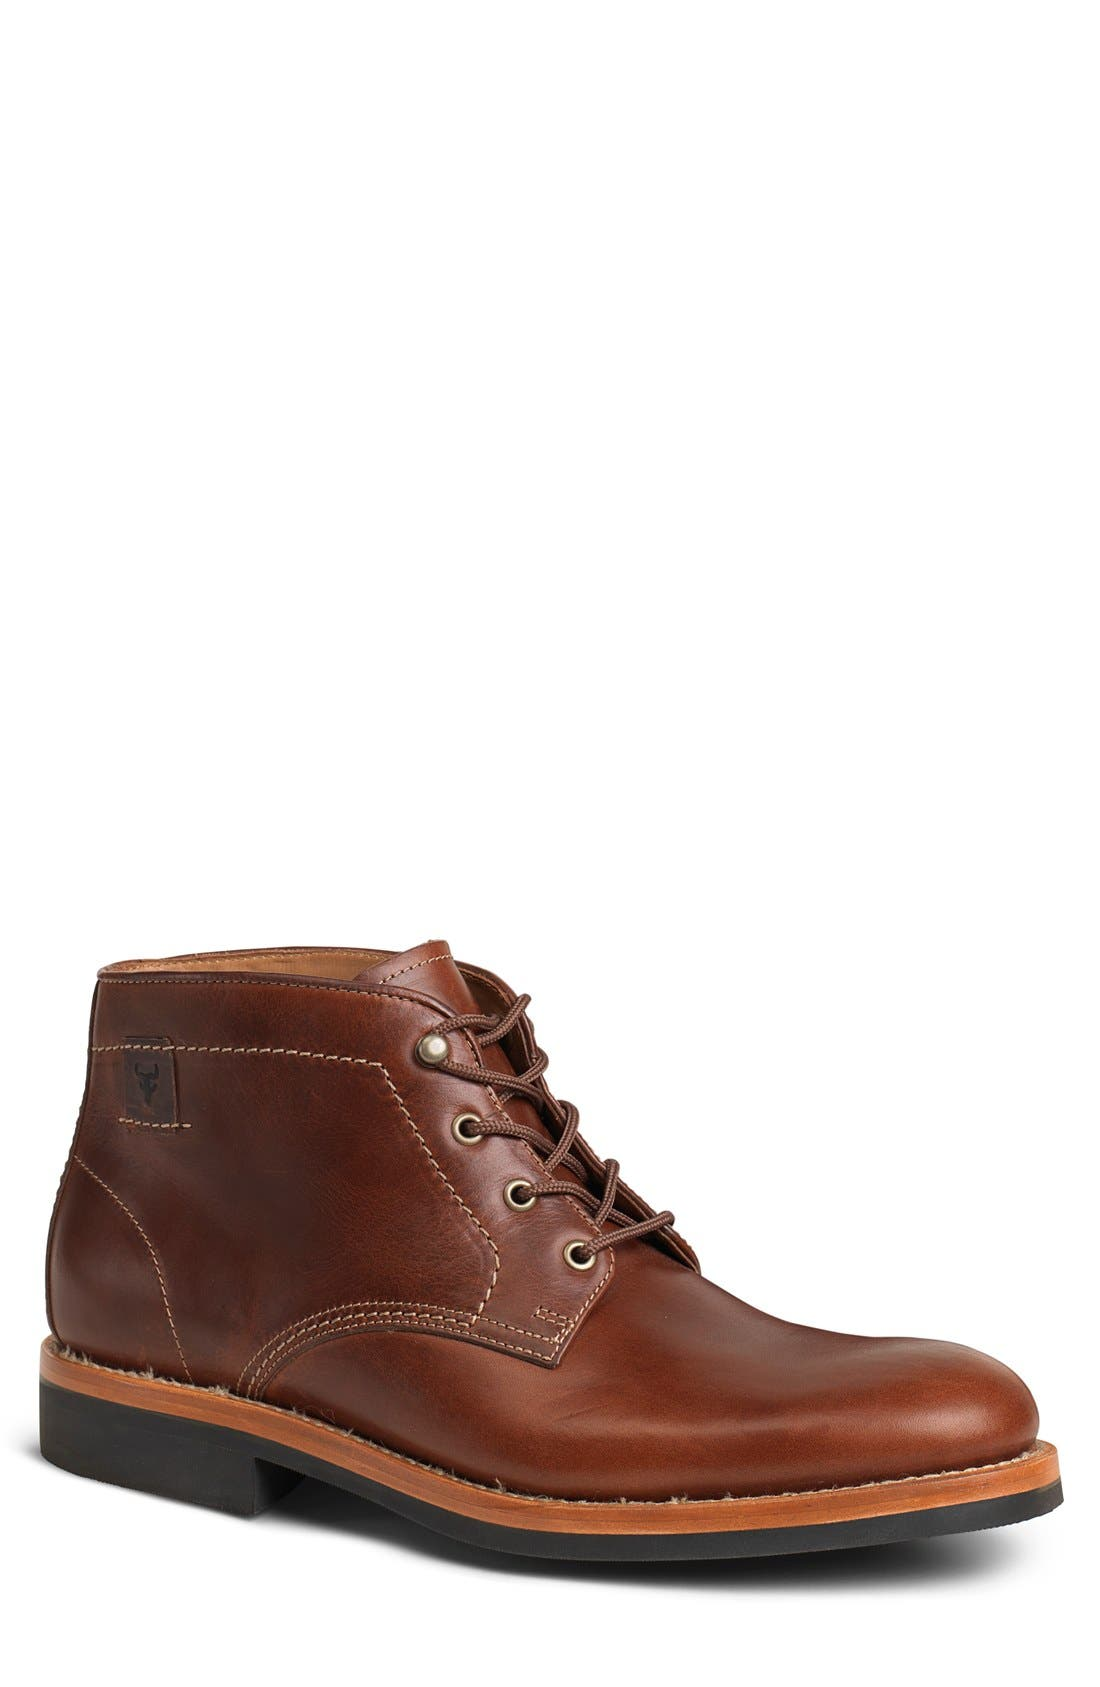 Alternate Image 1 Selected - Trask 'Irving Mid' Plain Toe Boot (Men)